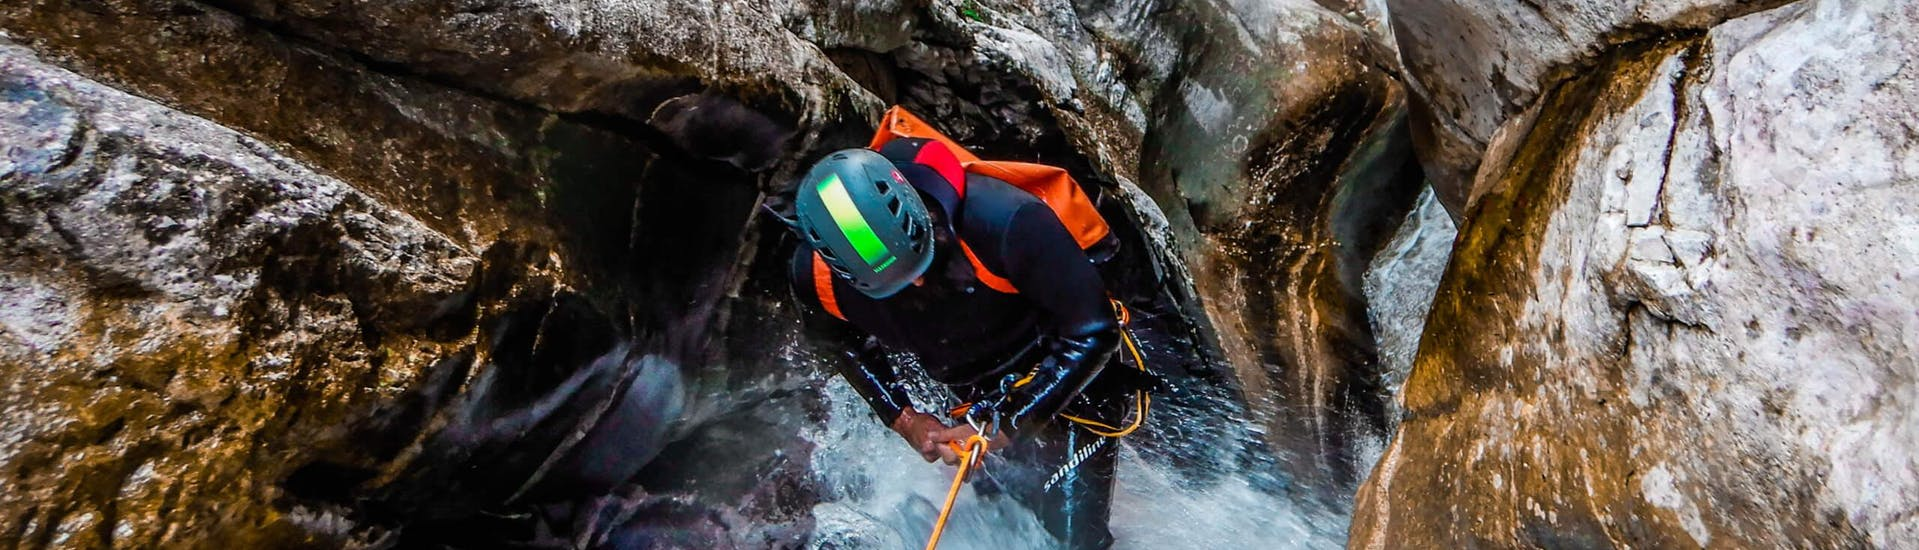 "Descend next to the waterfall during Canyoning ""Classic"" - Savinja organized by Funpark Menina"